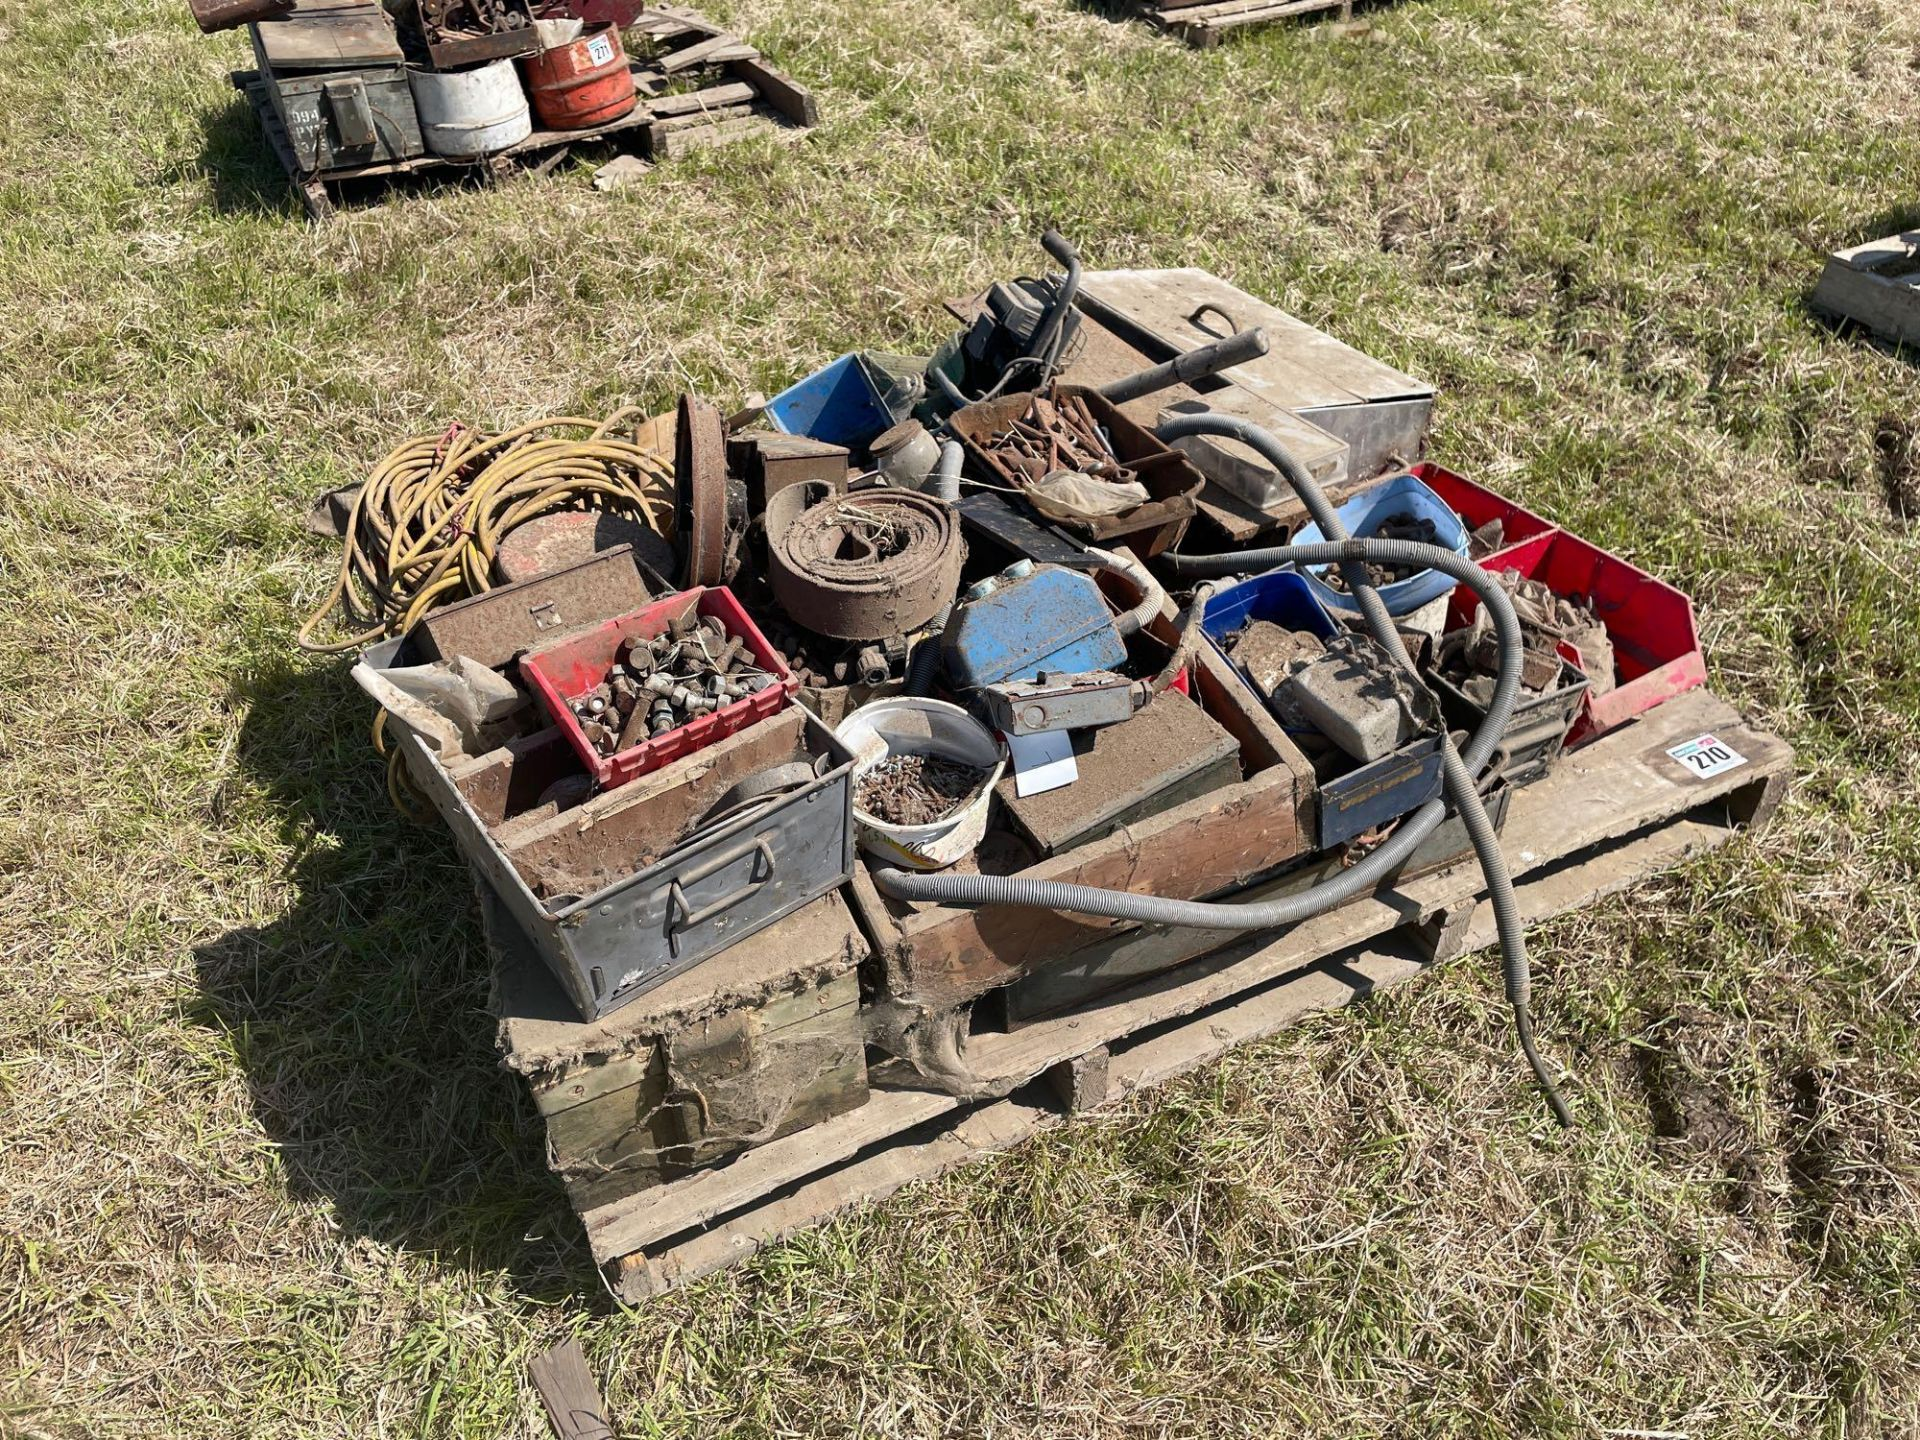 Various spares including bolts, RSJ and pins